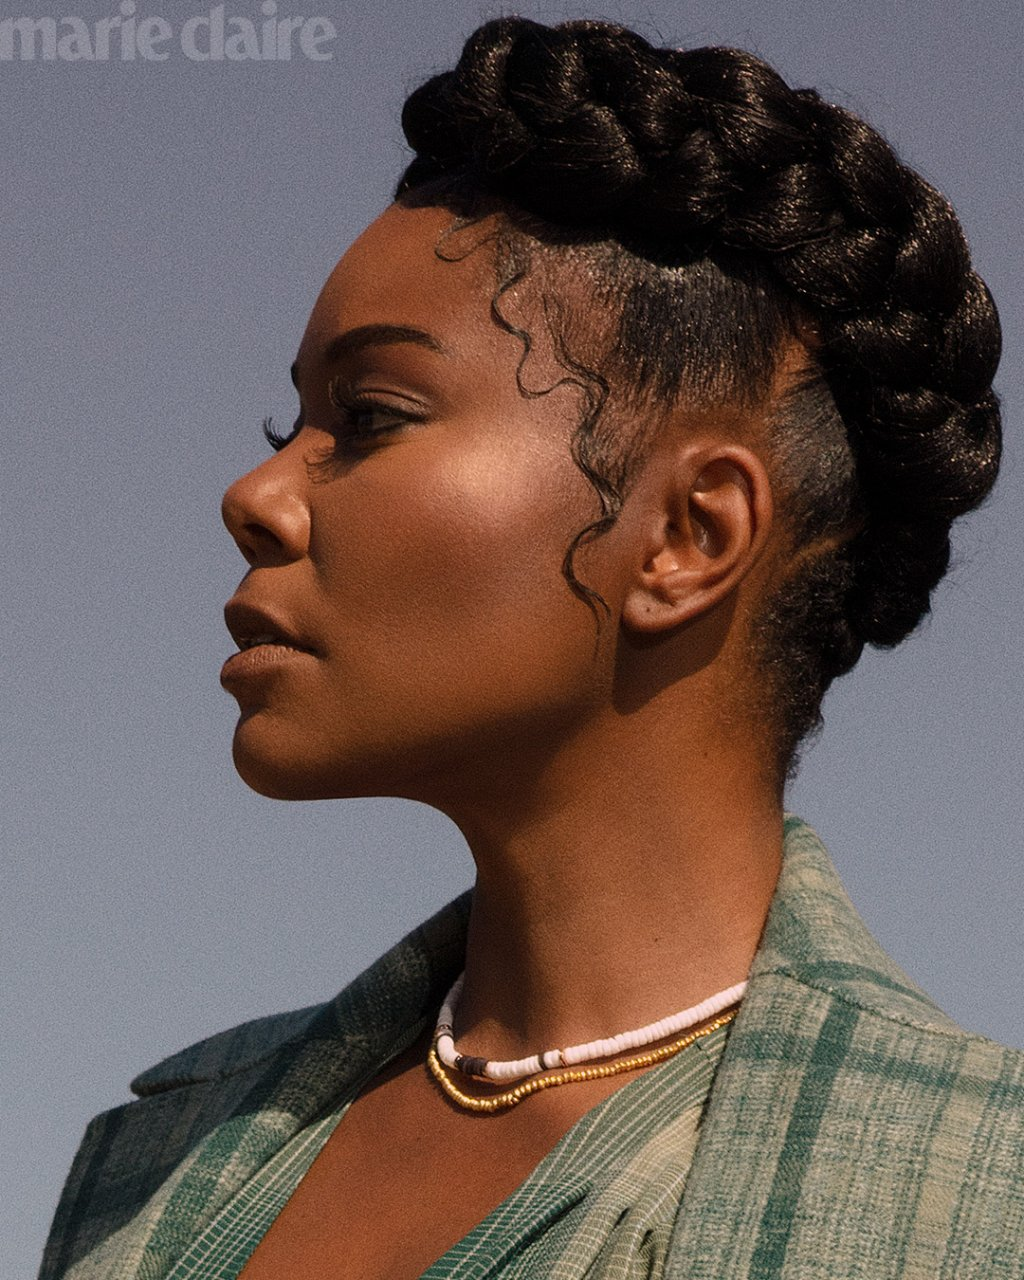 gabrielle-union-is-comfortable-in-her-own-skin-see-more-pics-from-the-marie-claire-photo-shoot